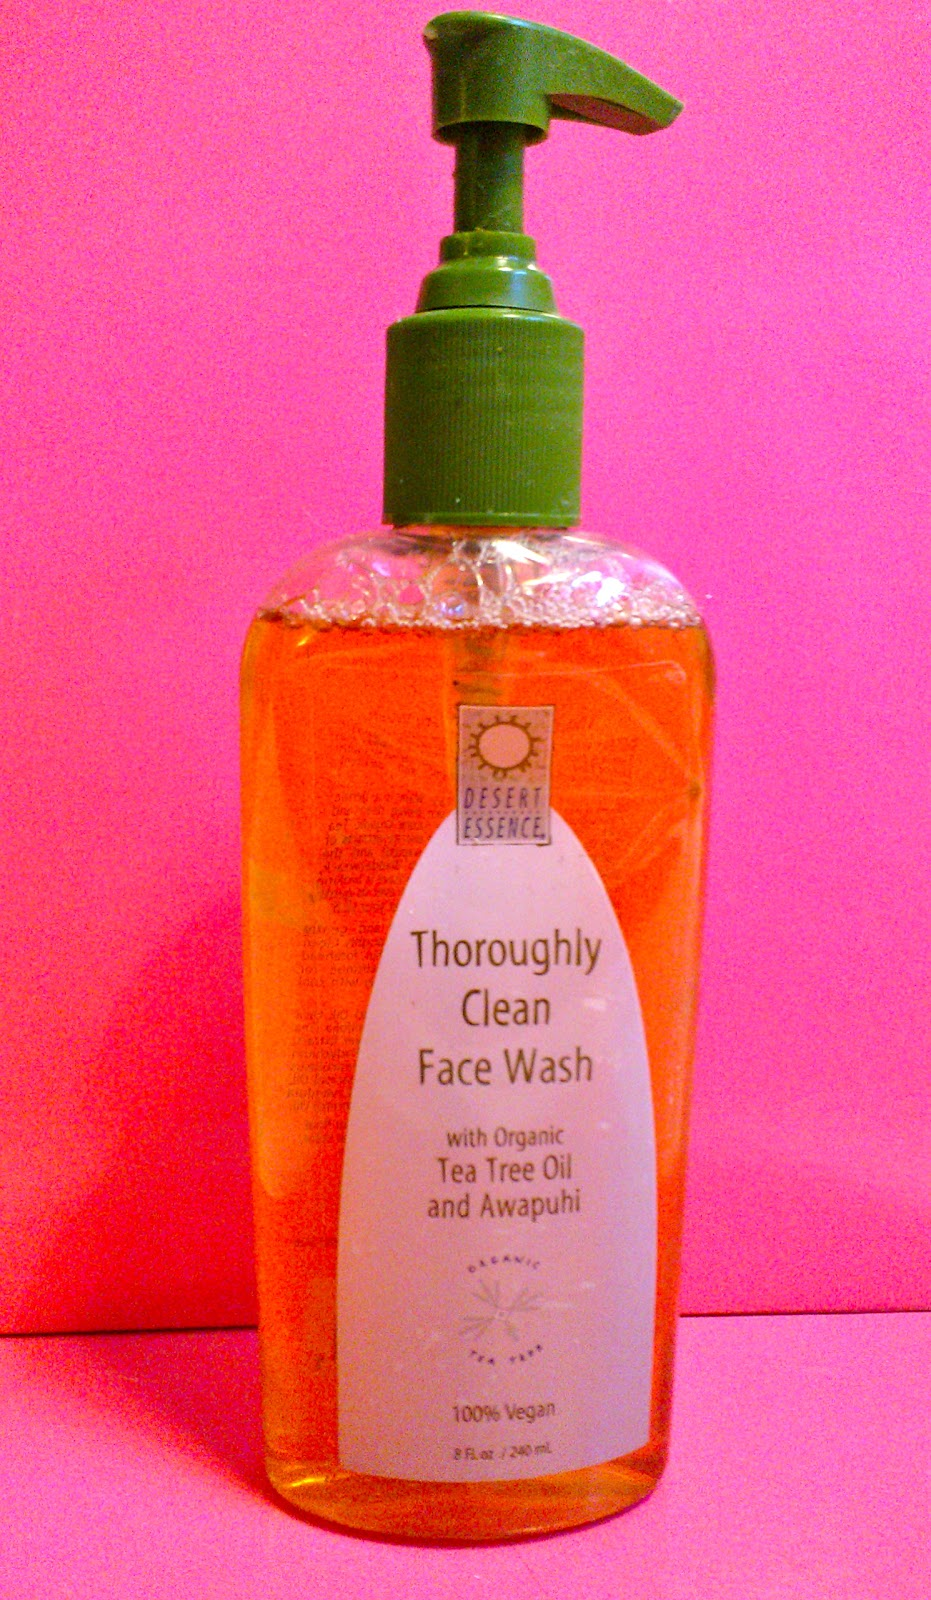 Review Desert Essence Thoroughly Clean Face Wash From